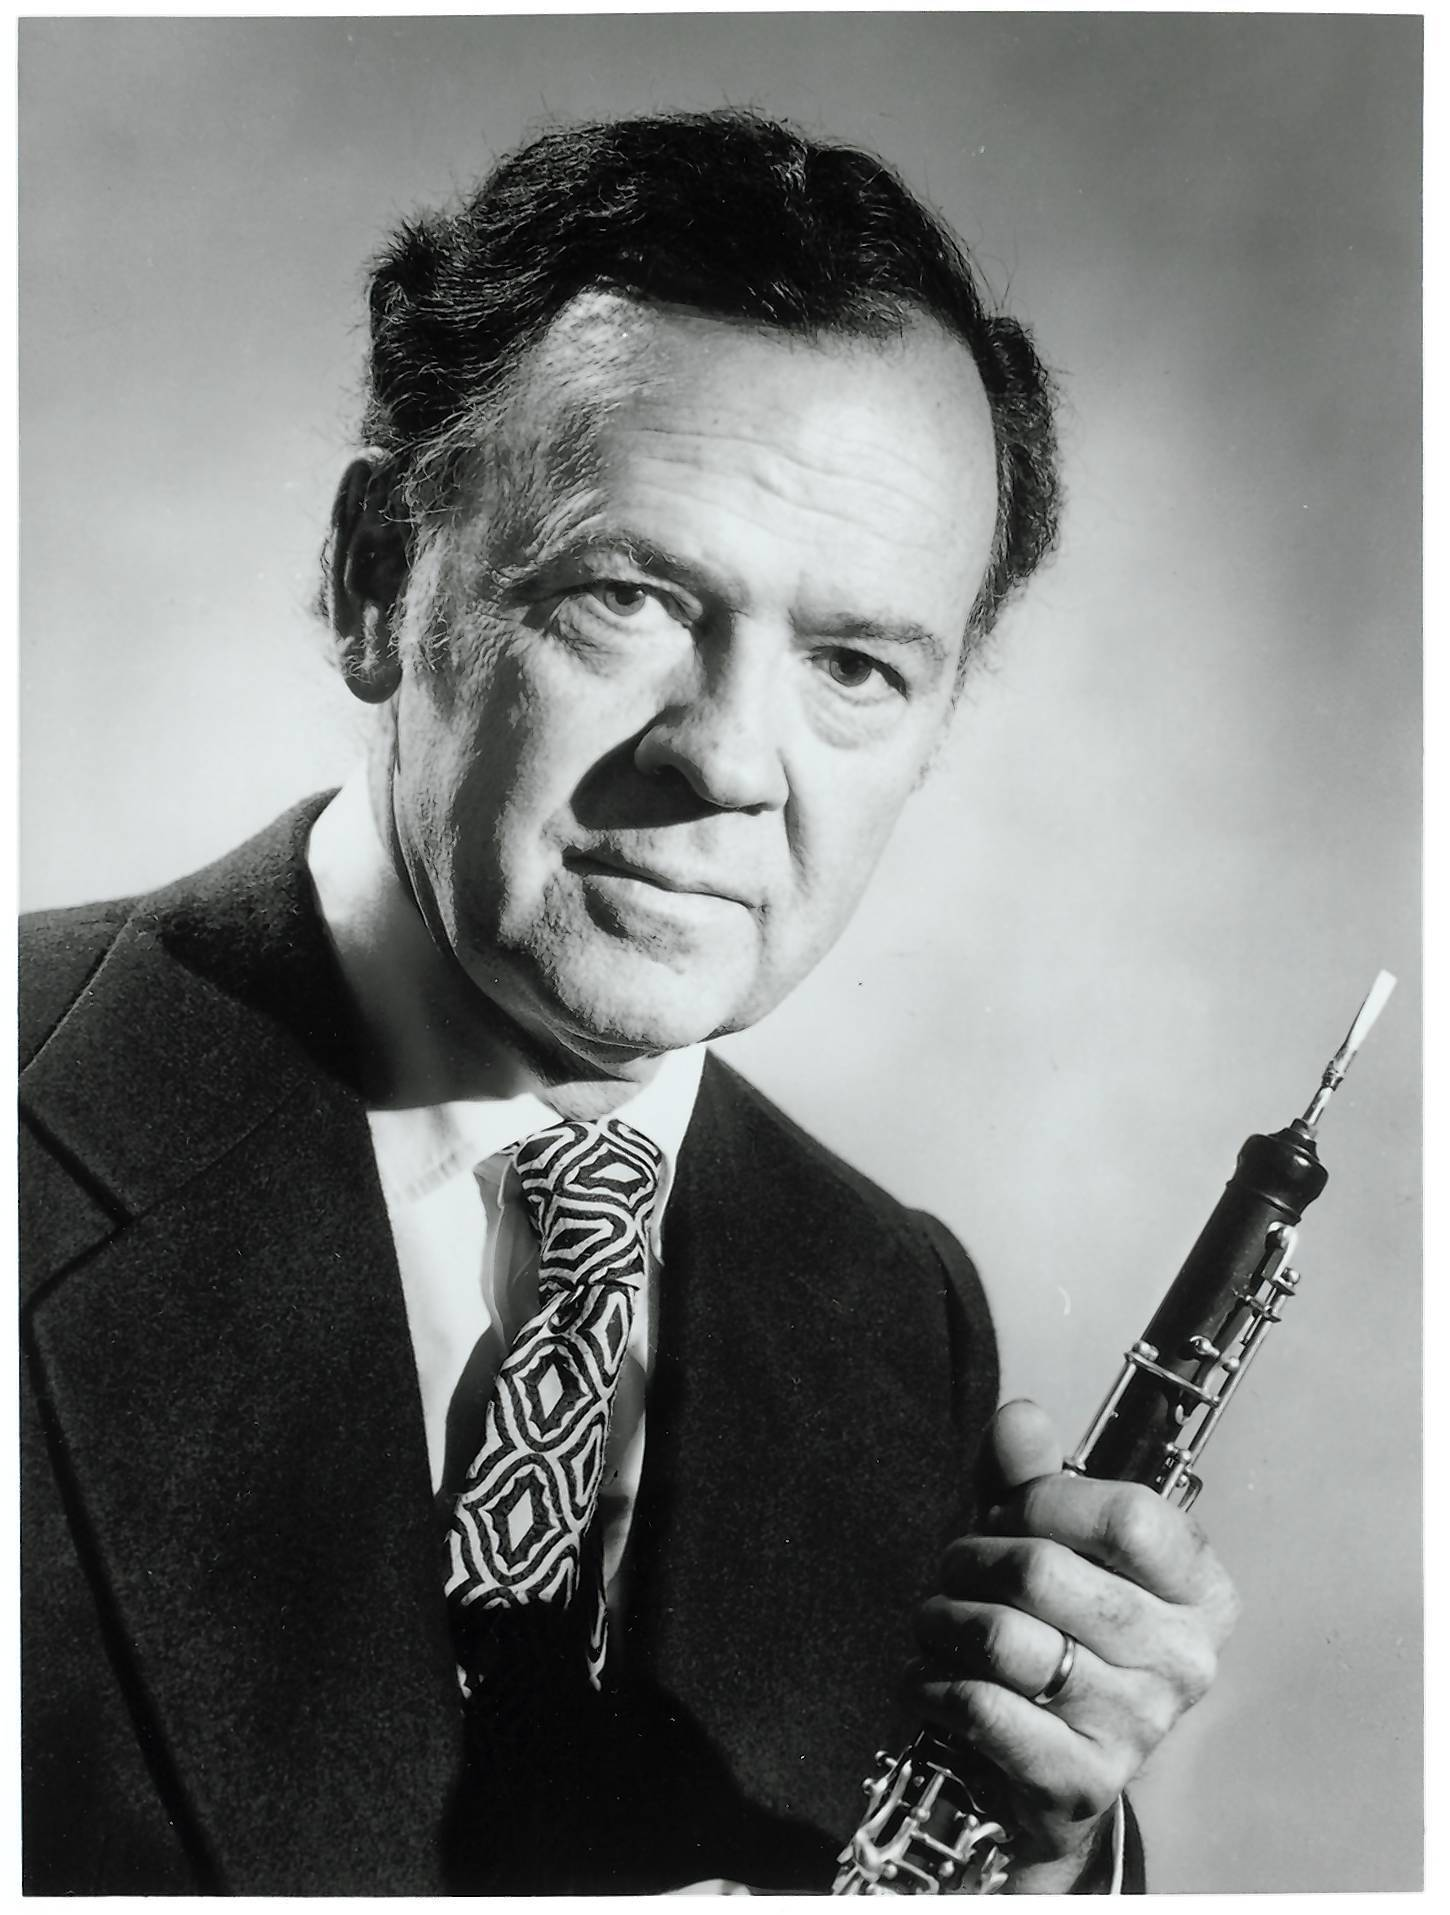 Ray Still performed with the Chicago Symphony Orchestra from 1953 to 1993. He died on his birthday at 94.